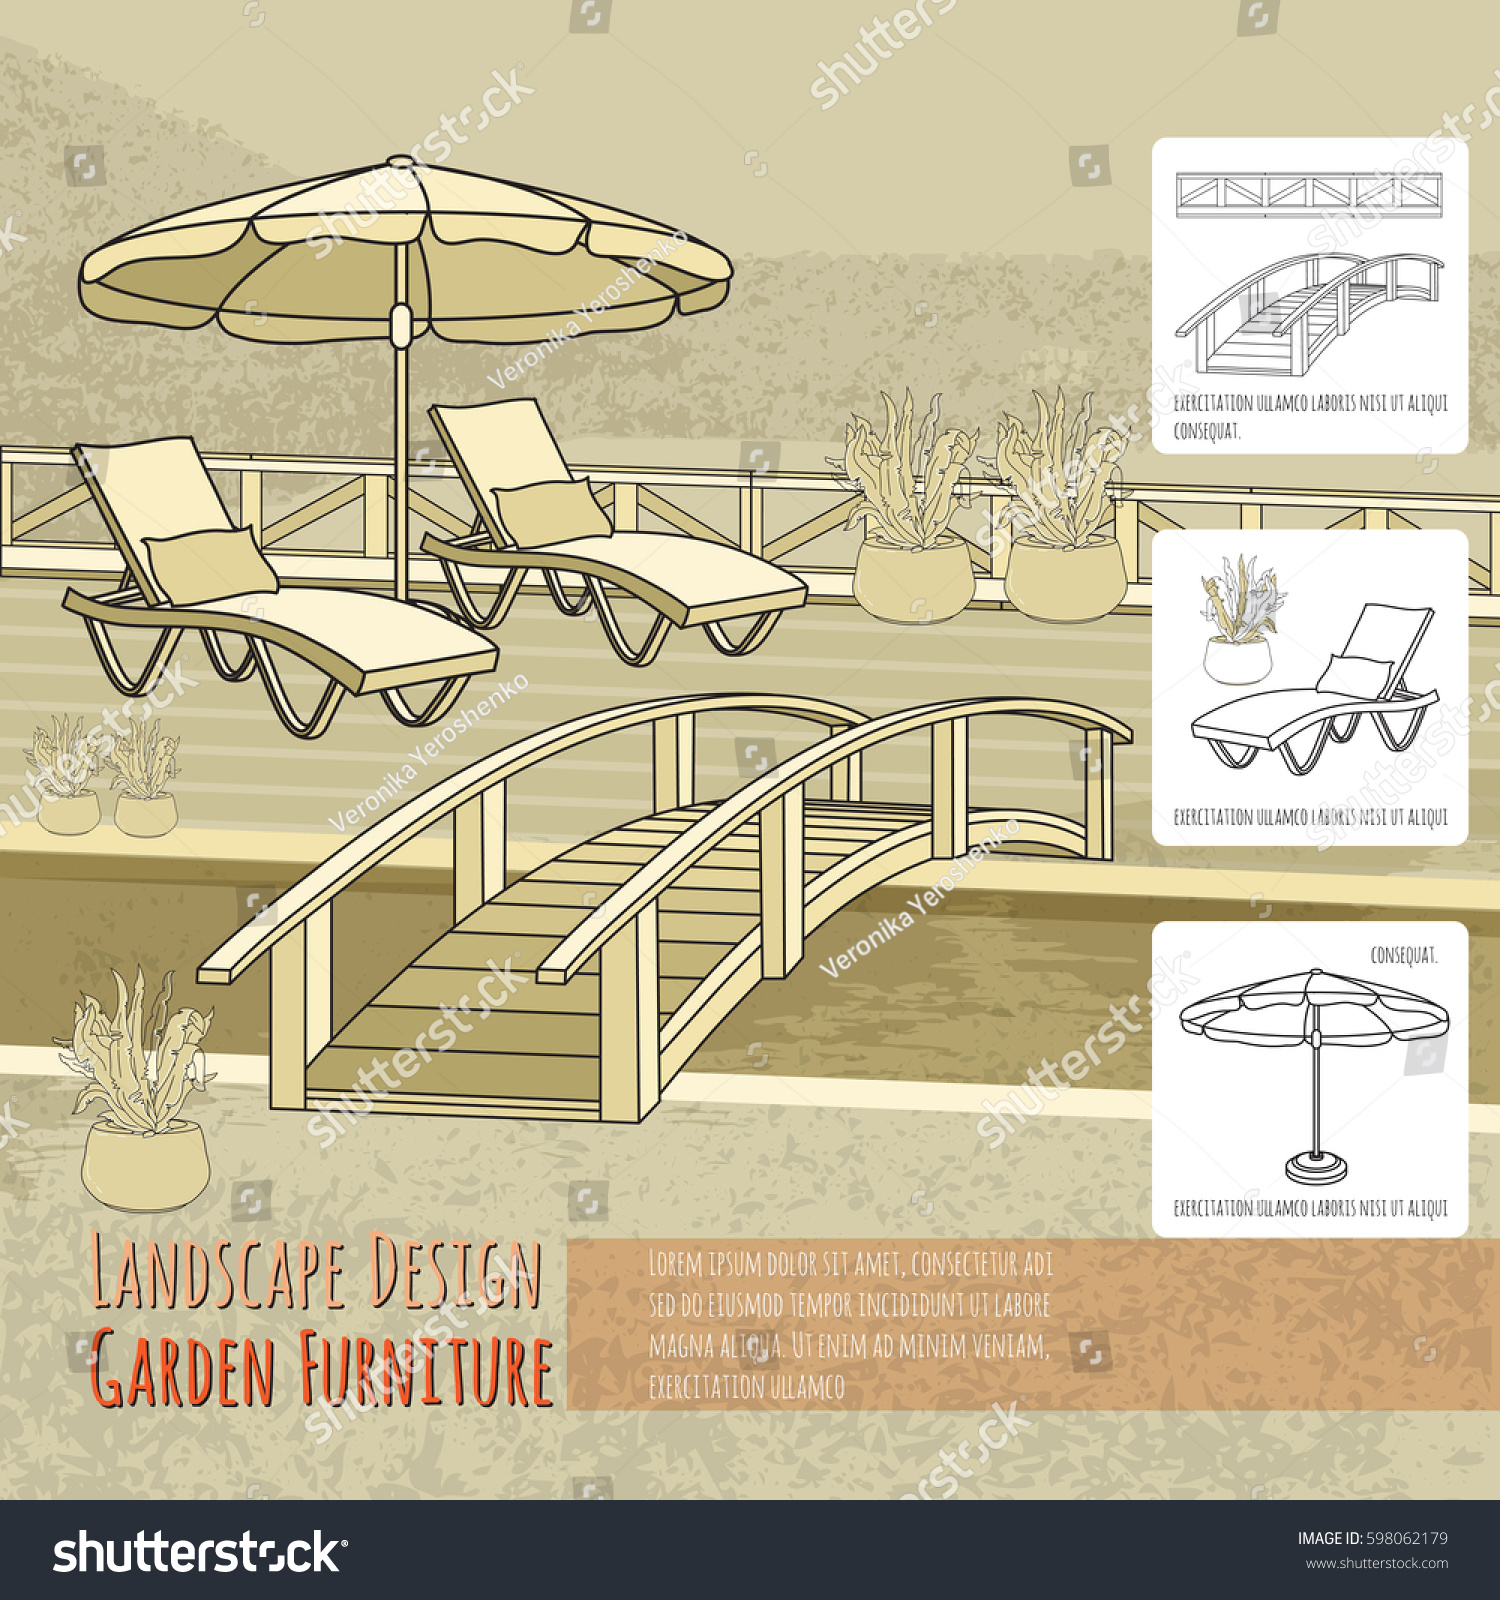 Vector Illustration Of Hand Drawn Lounge Chairs Under Patio Umbrella,  Bridge And Flowers In Pot